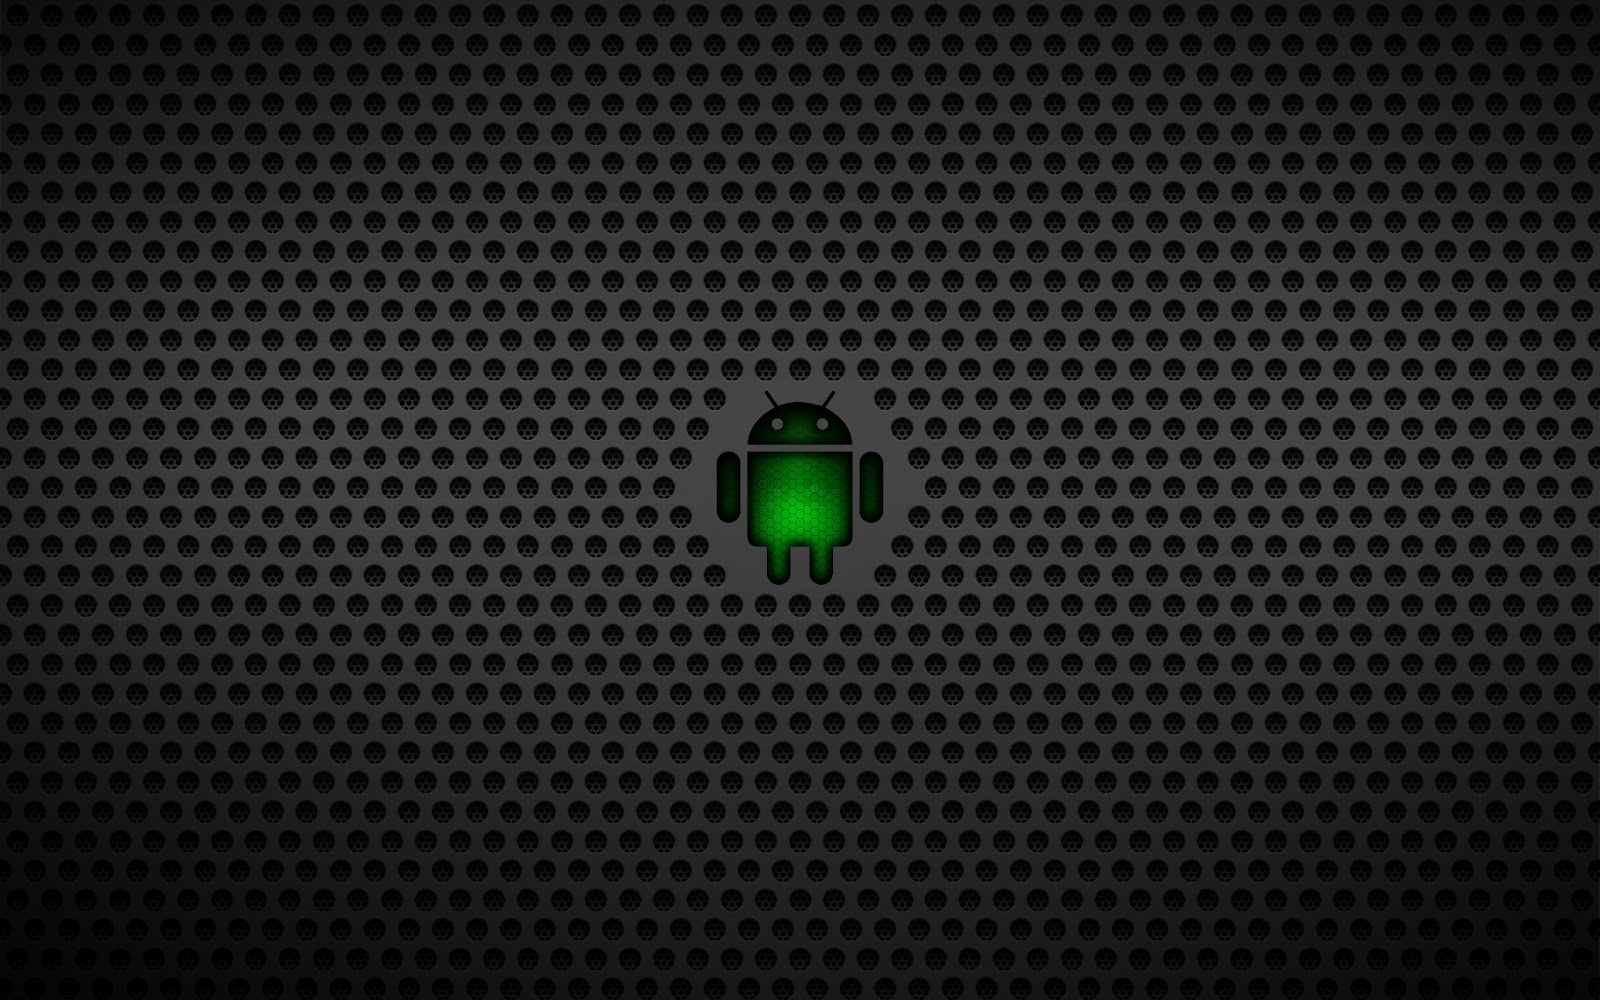 High Resolution Wallpaper Android: Metallic Android HD Wallpaper